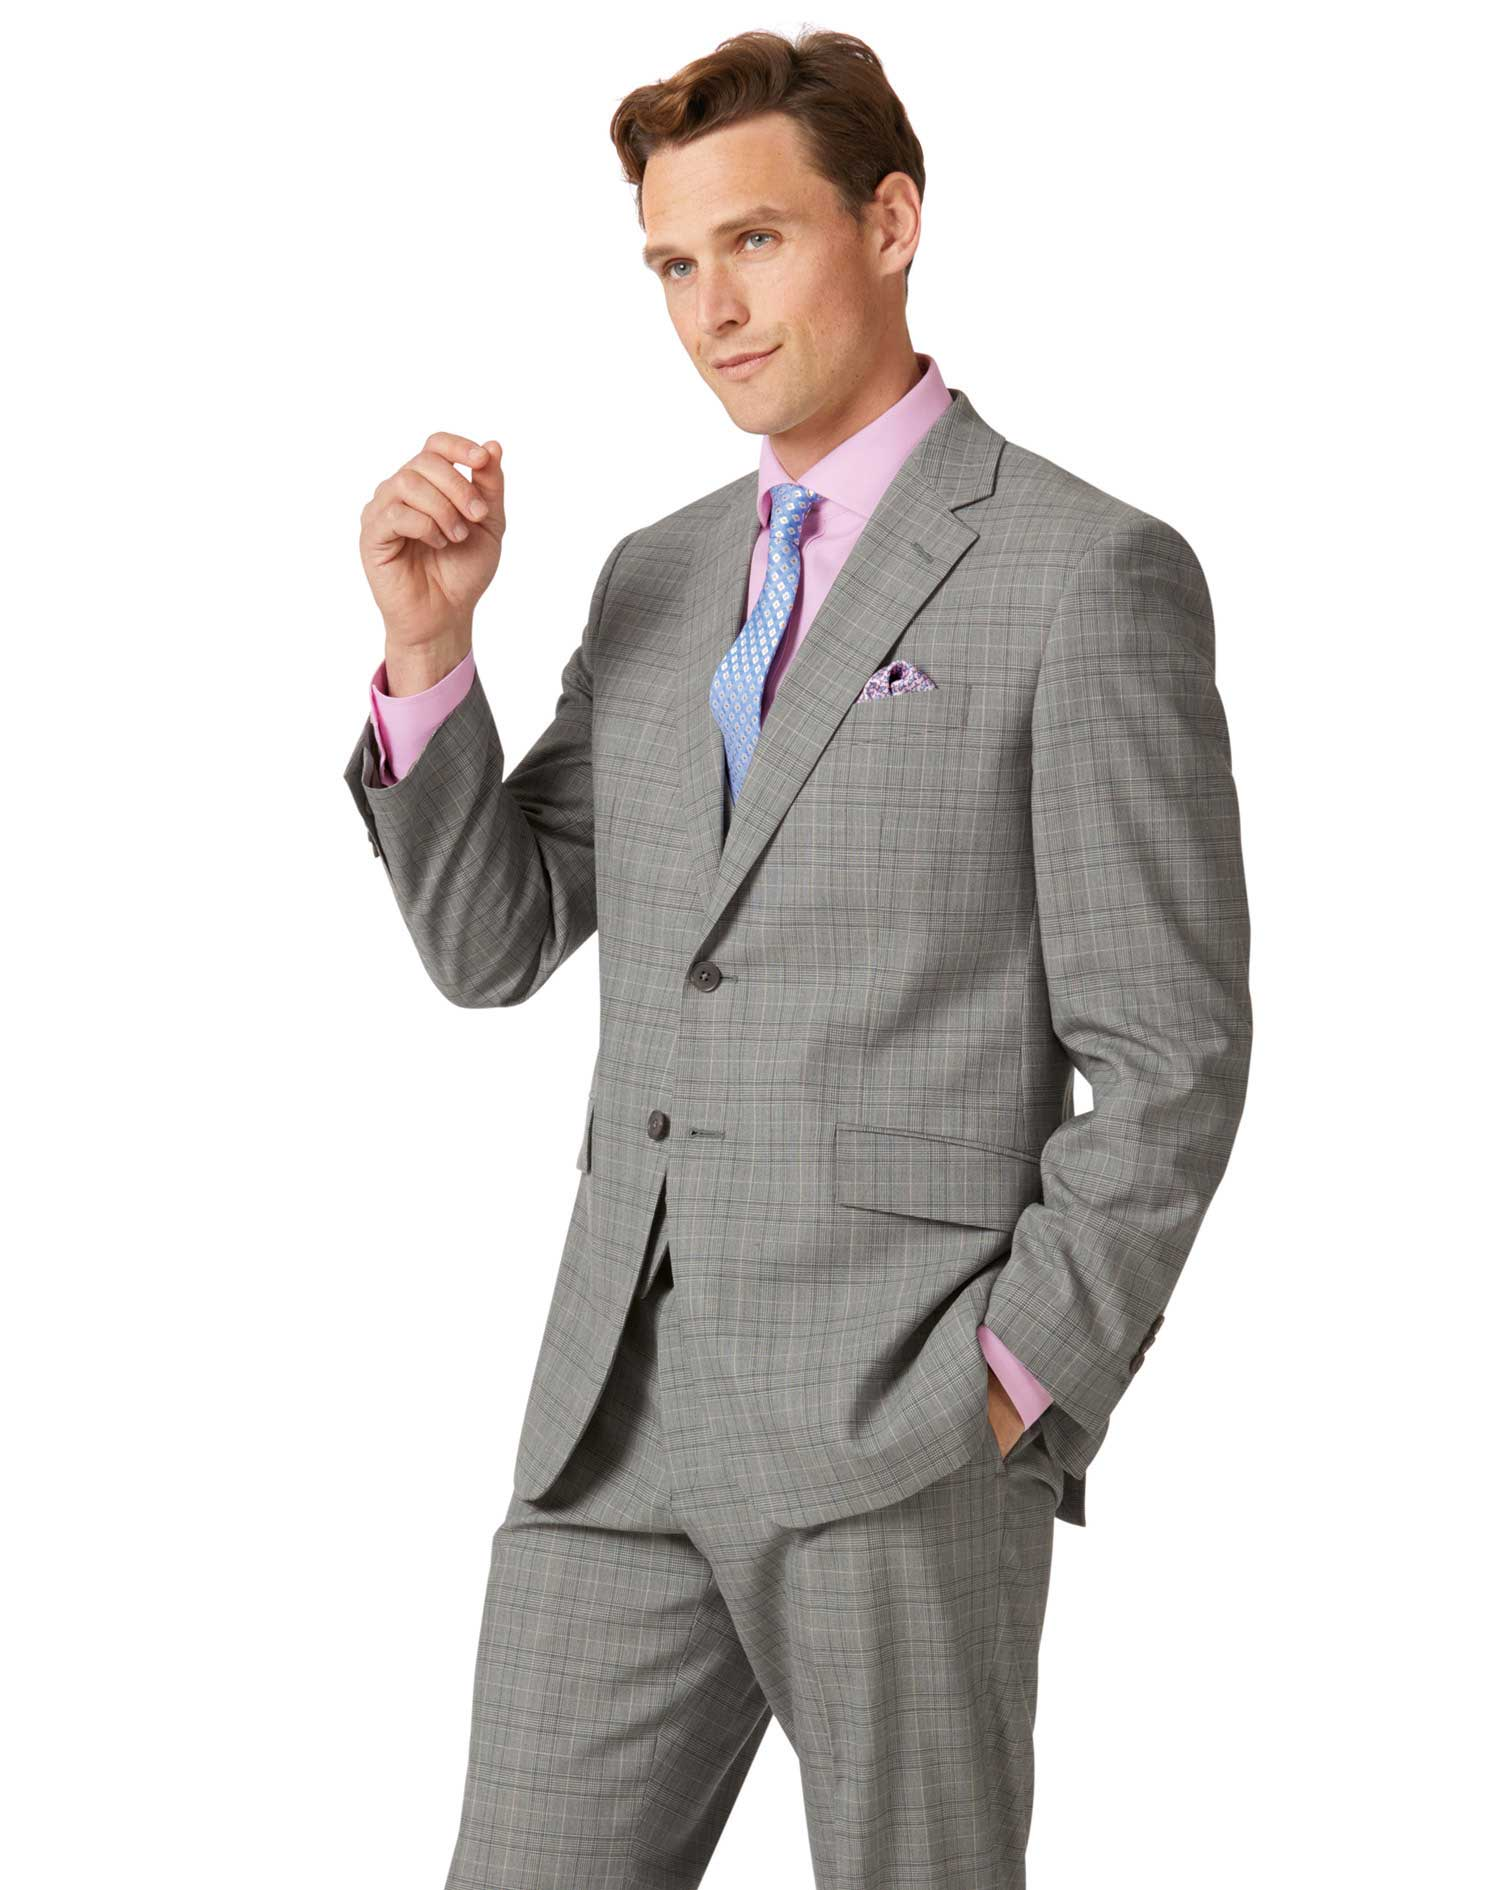 Grey Prince Of Wales Classic Fit Panama Business Suit Wool Jacket Size 40 Regular by Charles Tyrwhit